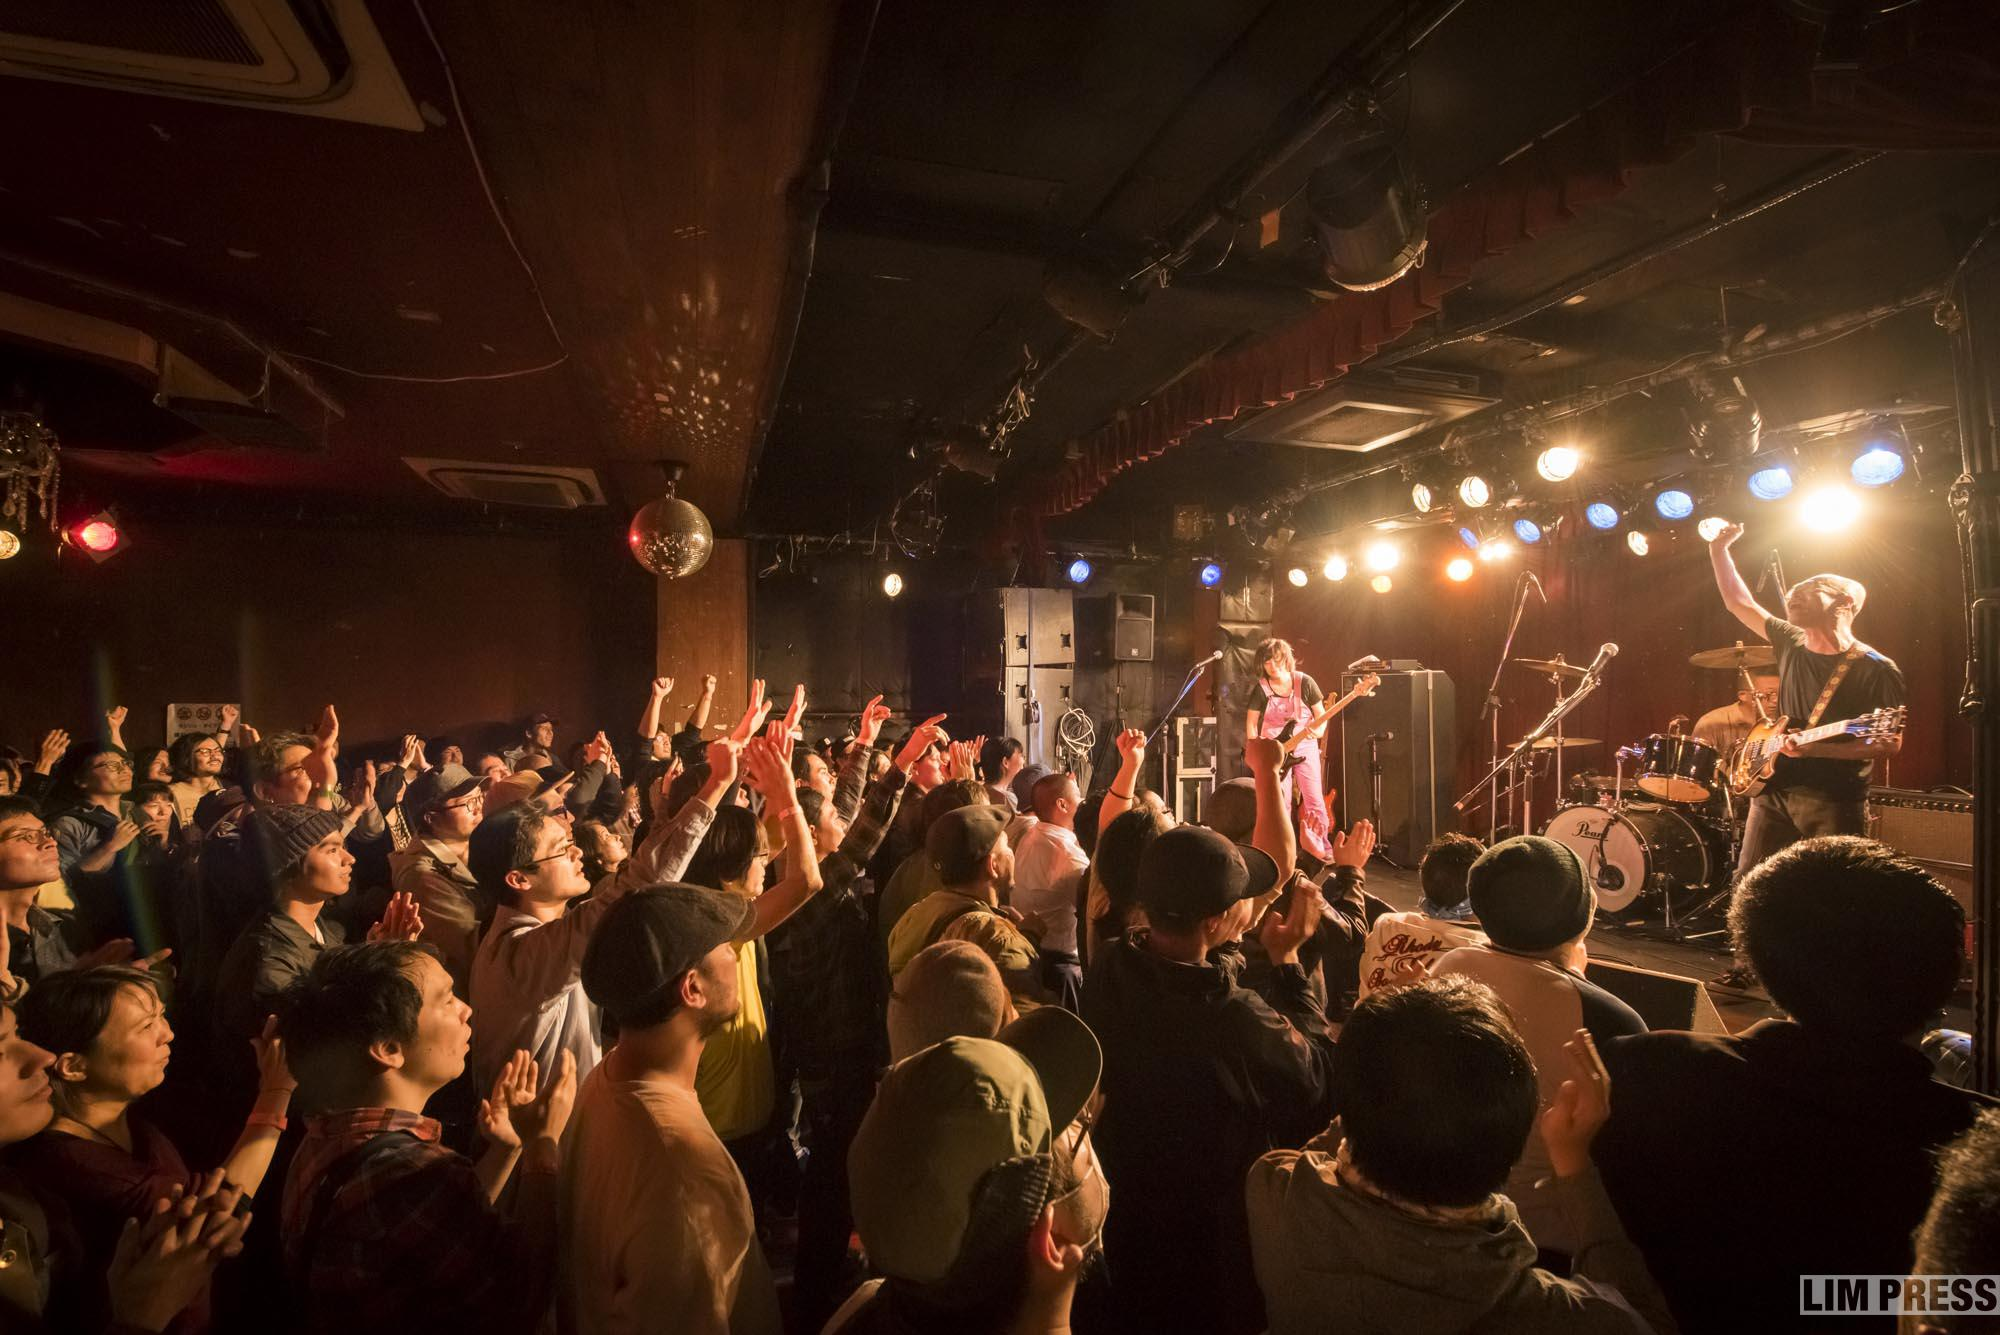 eastern youth | Sakurazaka ASYLUM 2018 | 2018.02.10